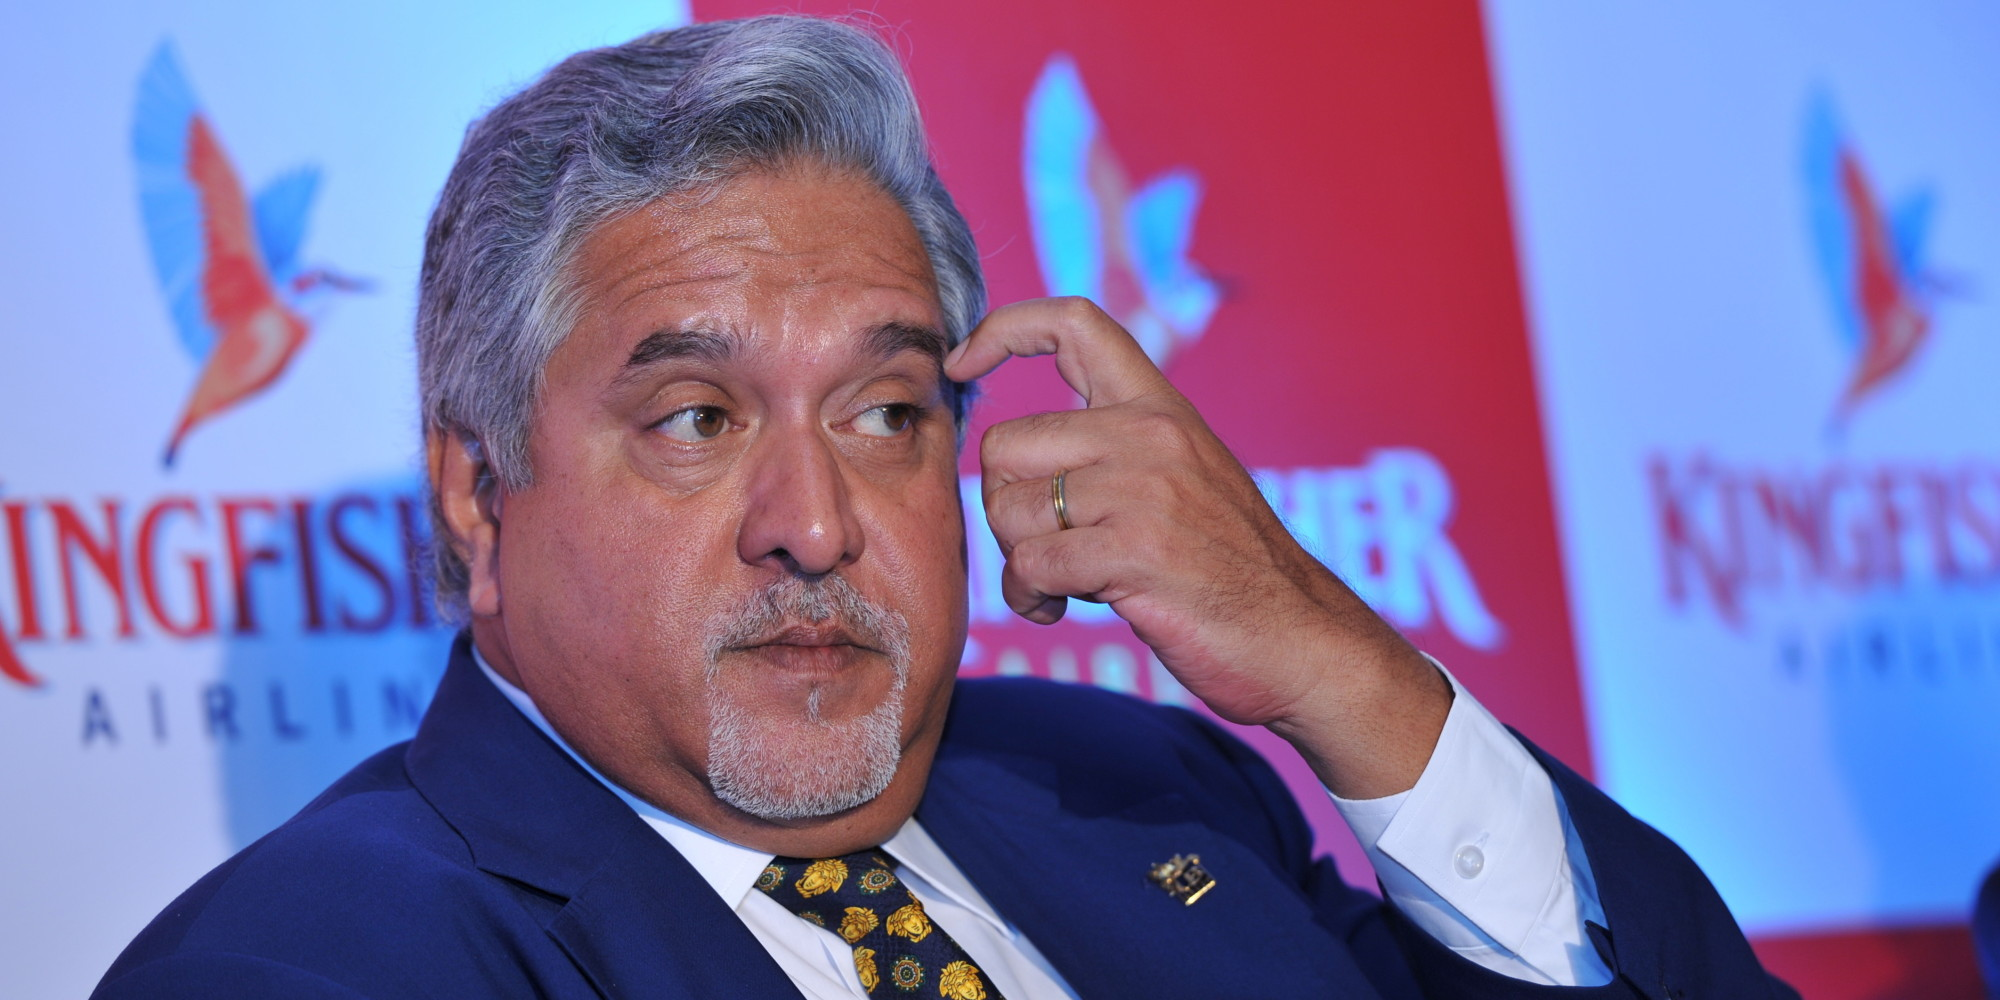 Vijay Mallya, disgraced former chairman of Kingfisher Airlines at press conference.